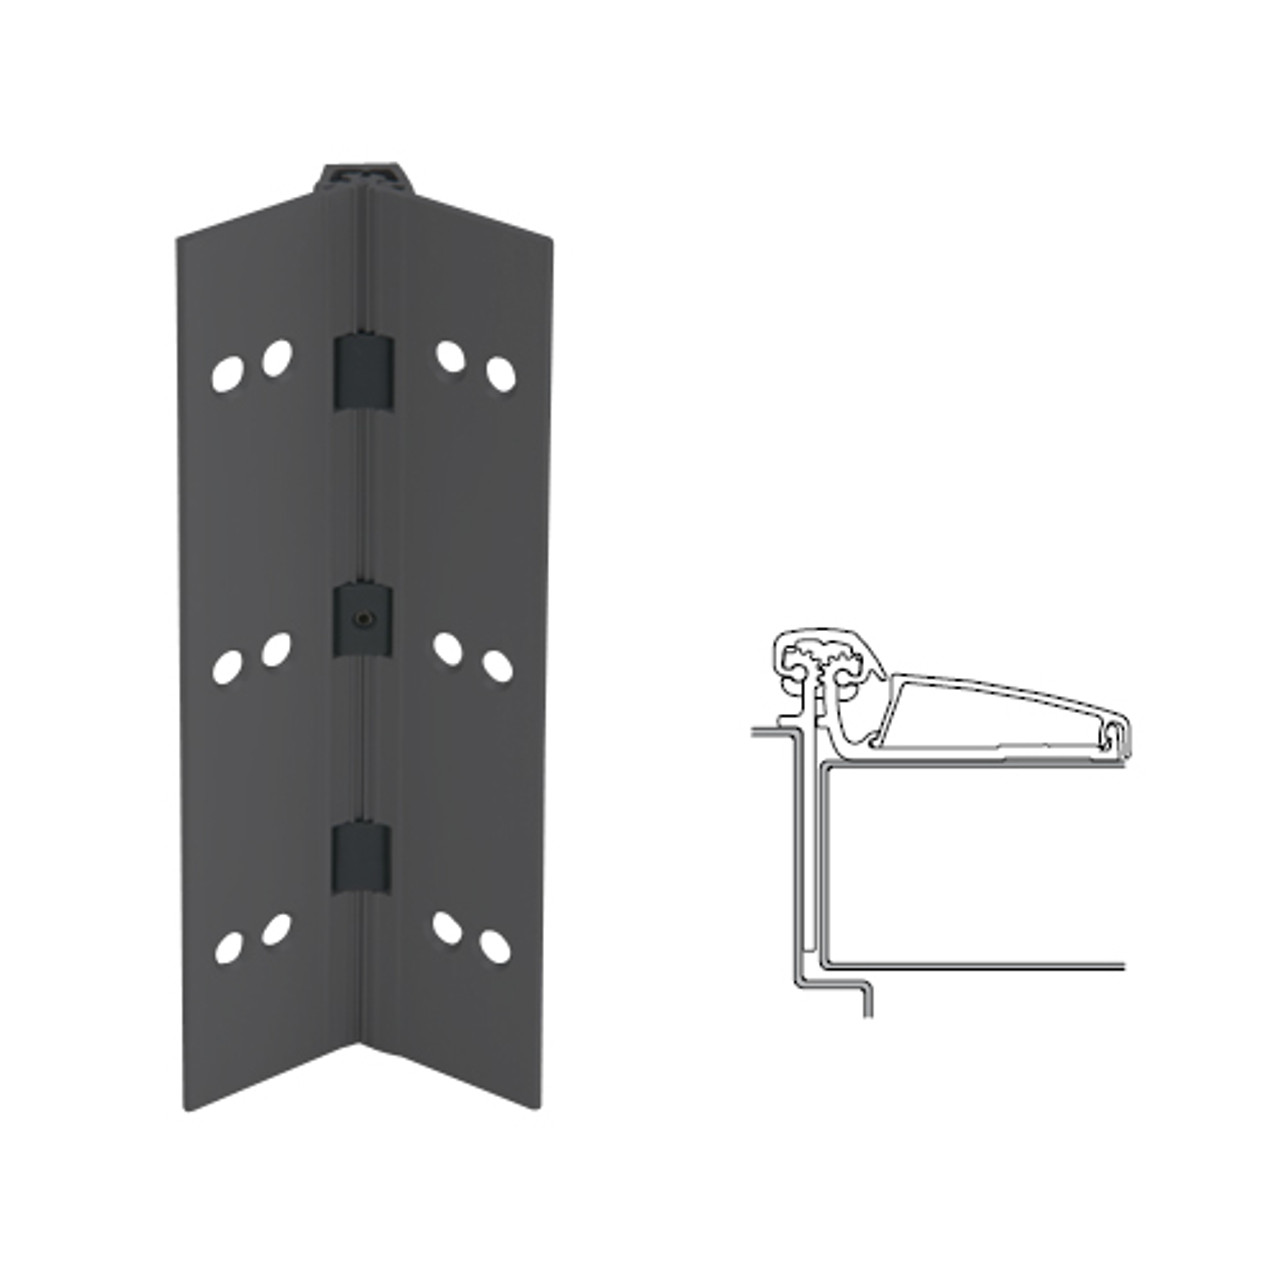 046XY-315AN-95 IVES Adjustable Half Surface Continuous Geared Hinges in Anodized Black